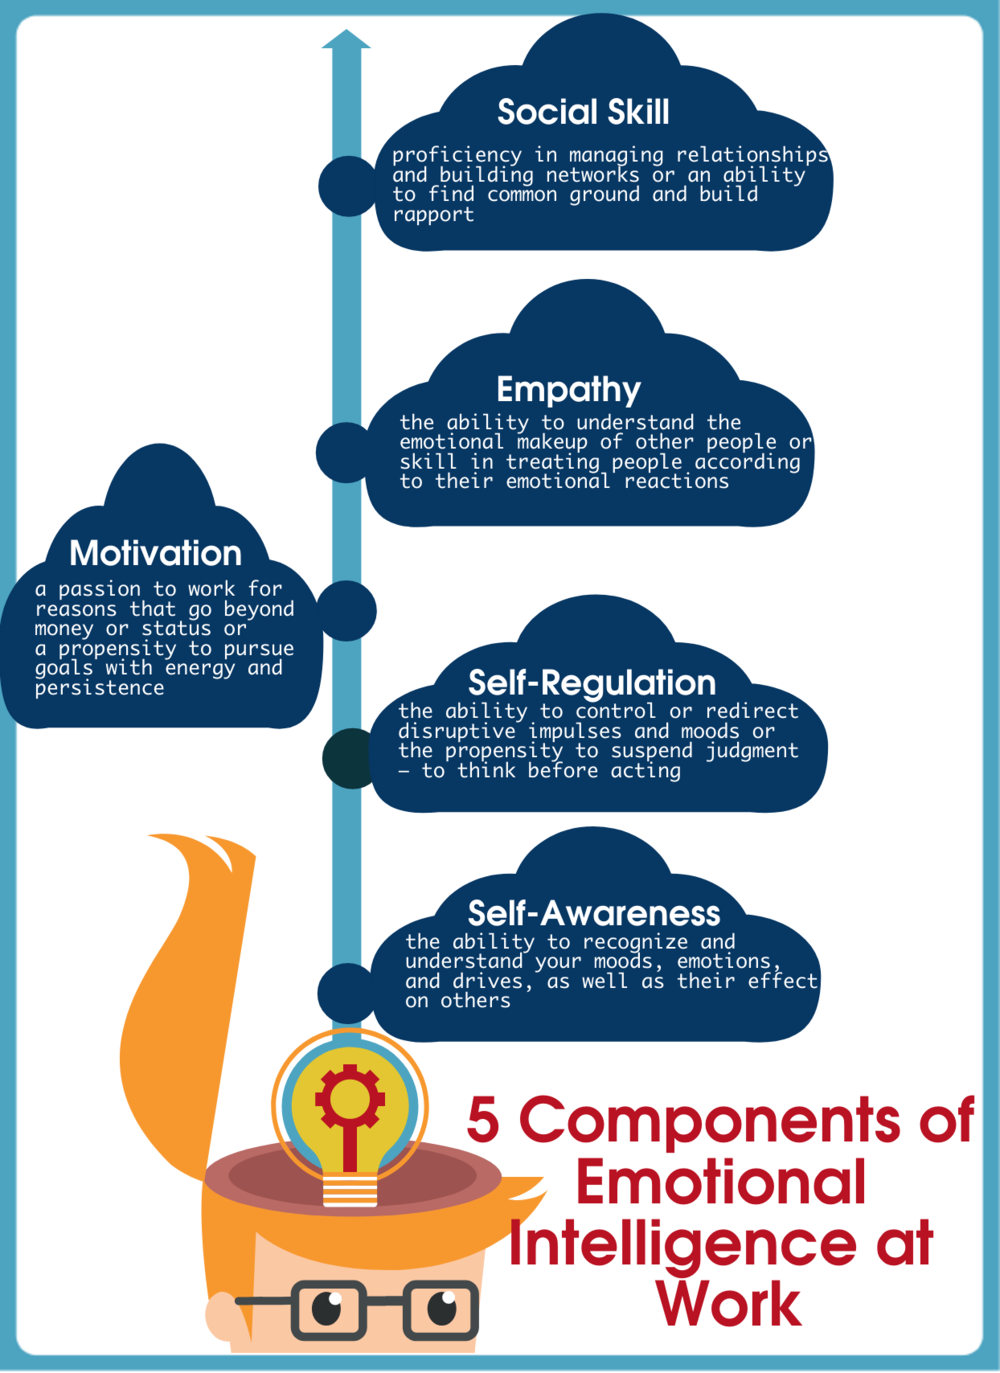 5 components of emotional intelligence (1).png